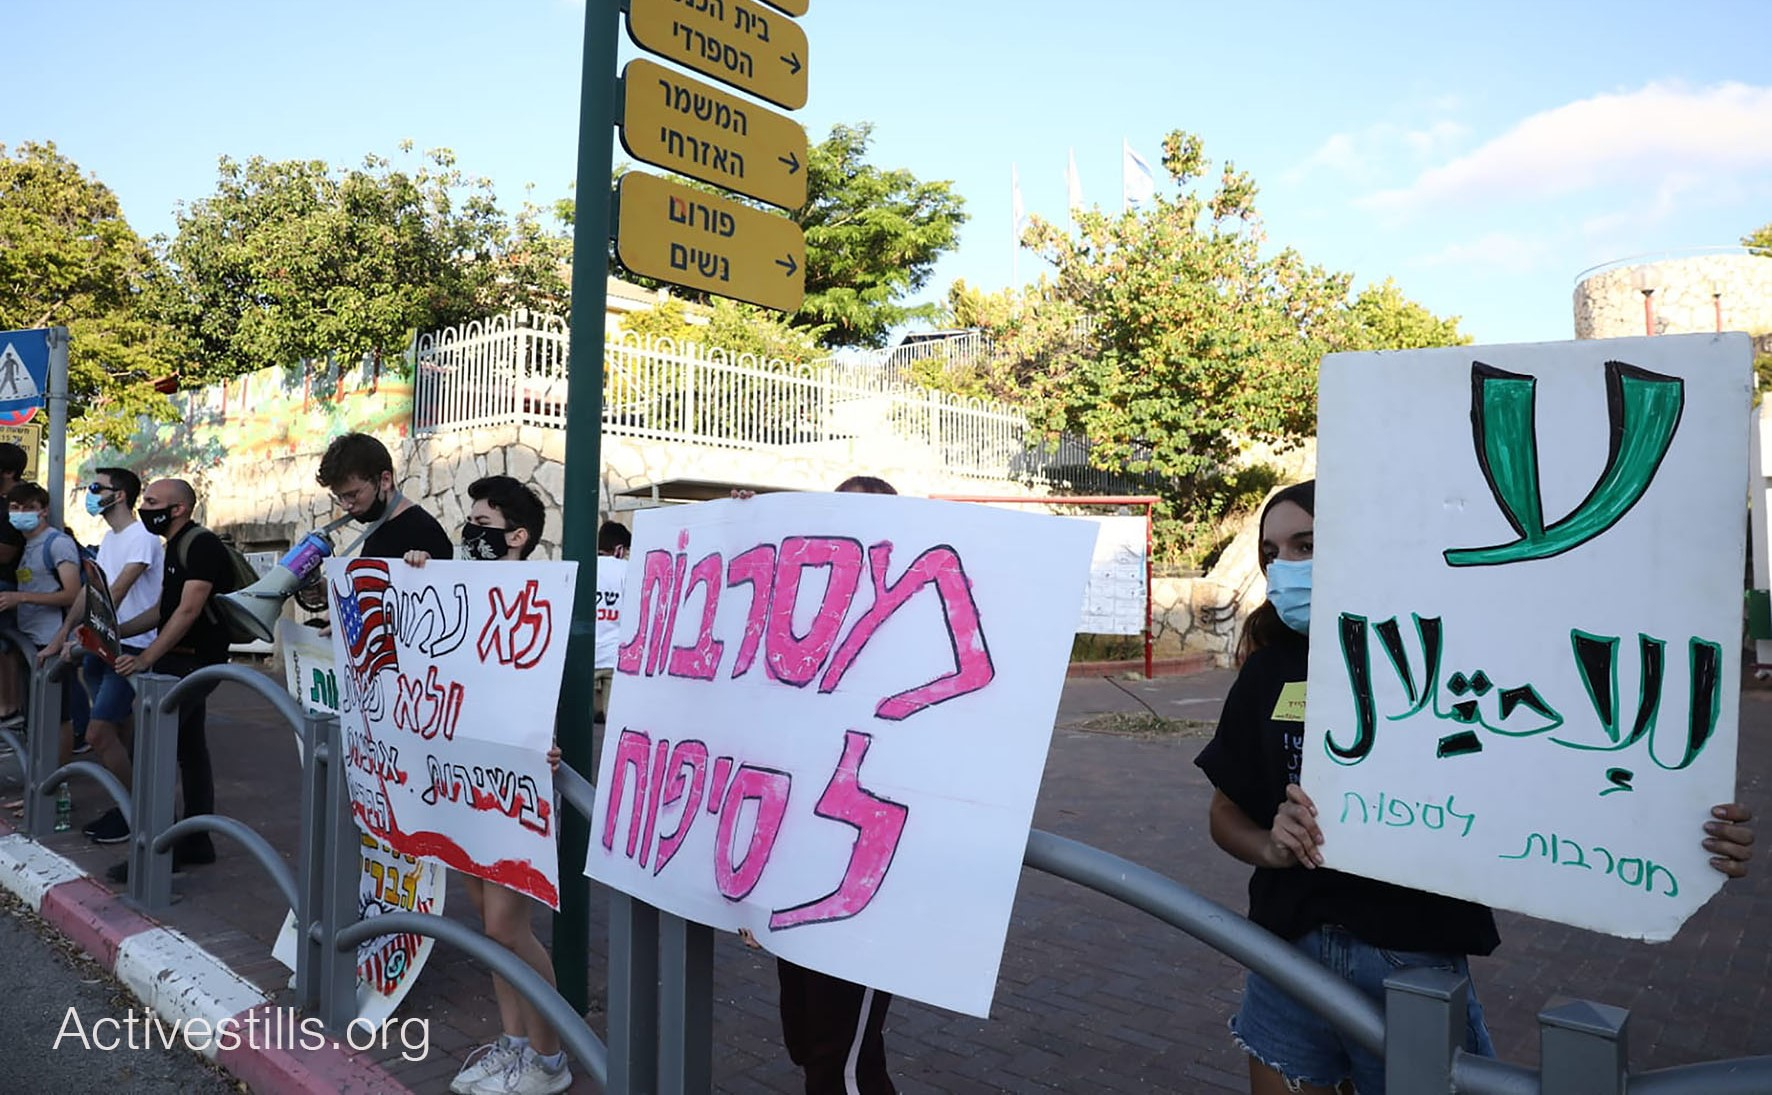 """Members of the group """"Youth against Annexation"""" demonstrate near the home of Israel's Minister of Defense, Benny Gantz, in Rosh HaAyin on Thursday, June 25. The placard at the right reads in Arabic """"No to the Occupation"""" and is signed in Hebrew, """"Rejecting Annexation,"""" a slogan repeated in the two-word placard next to it. The sign with the American flag to the left reads in Hebrew: """"We won't die and we won't kill in the service of the United States."""""""